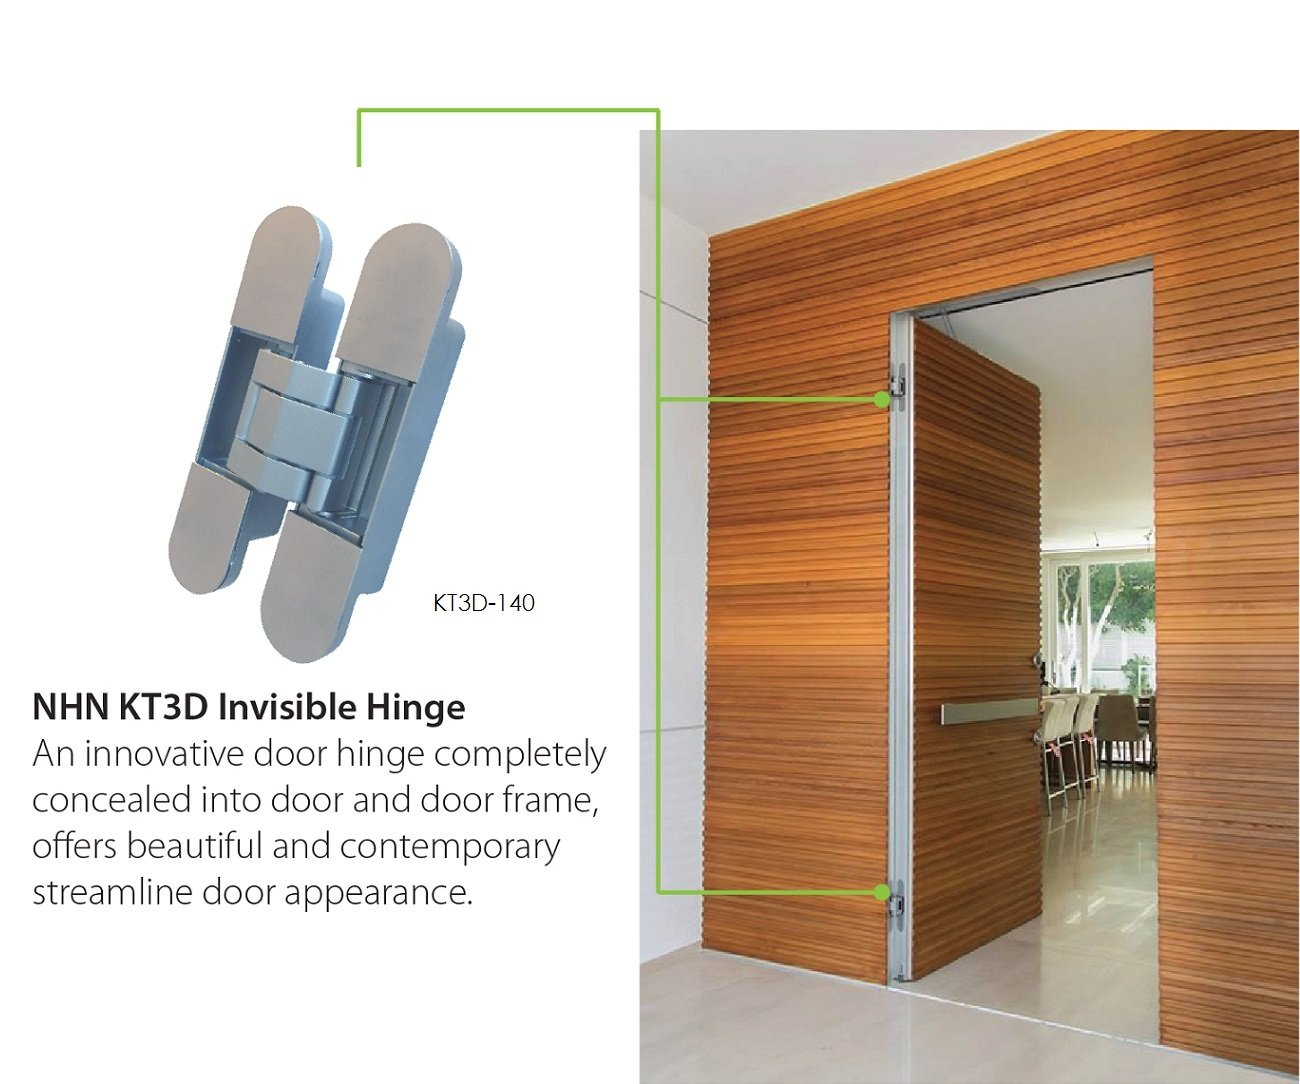 KT3D-140 Invisible Hinge, Set of Two(2), Up to 132lbs. Doors, Concealed and Streamline Door Hinge, 3-D Adjustable (Up to 132lbs) by NHN (Image #2)